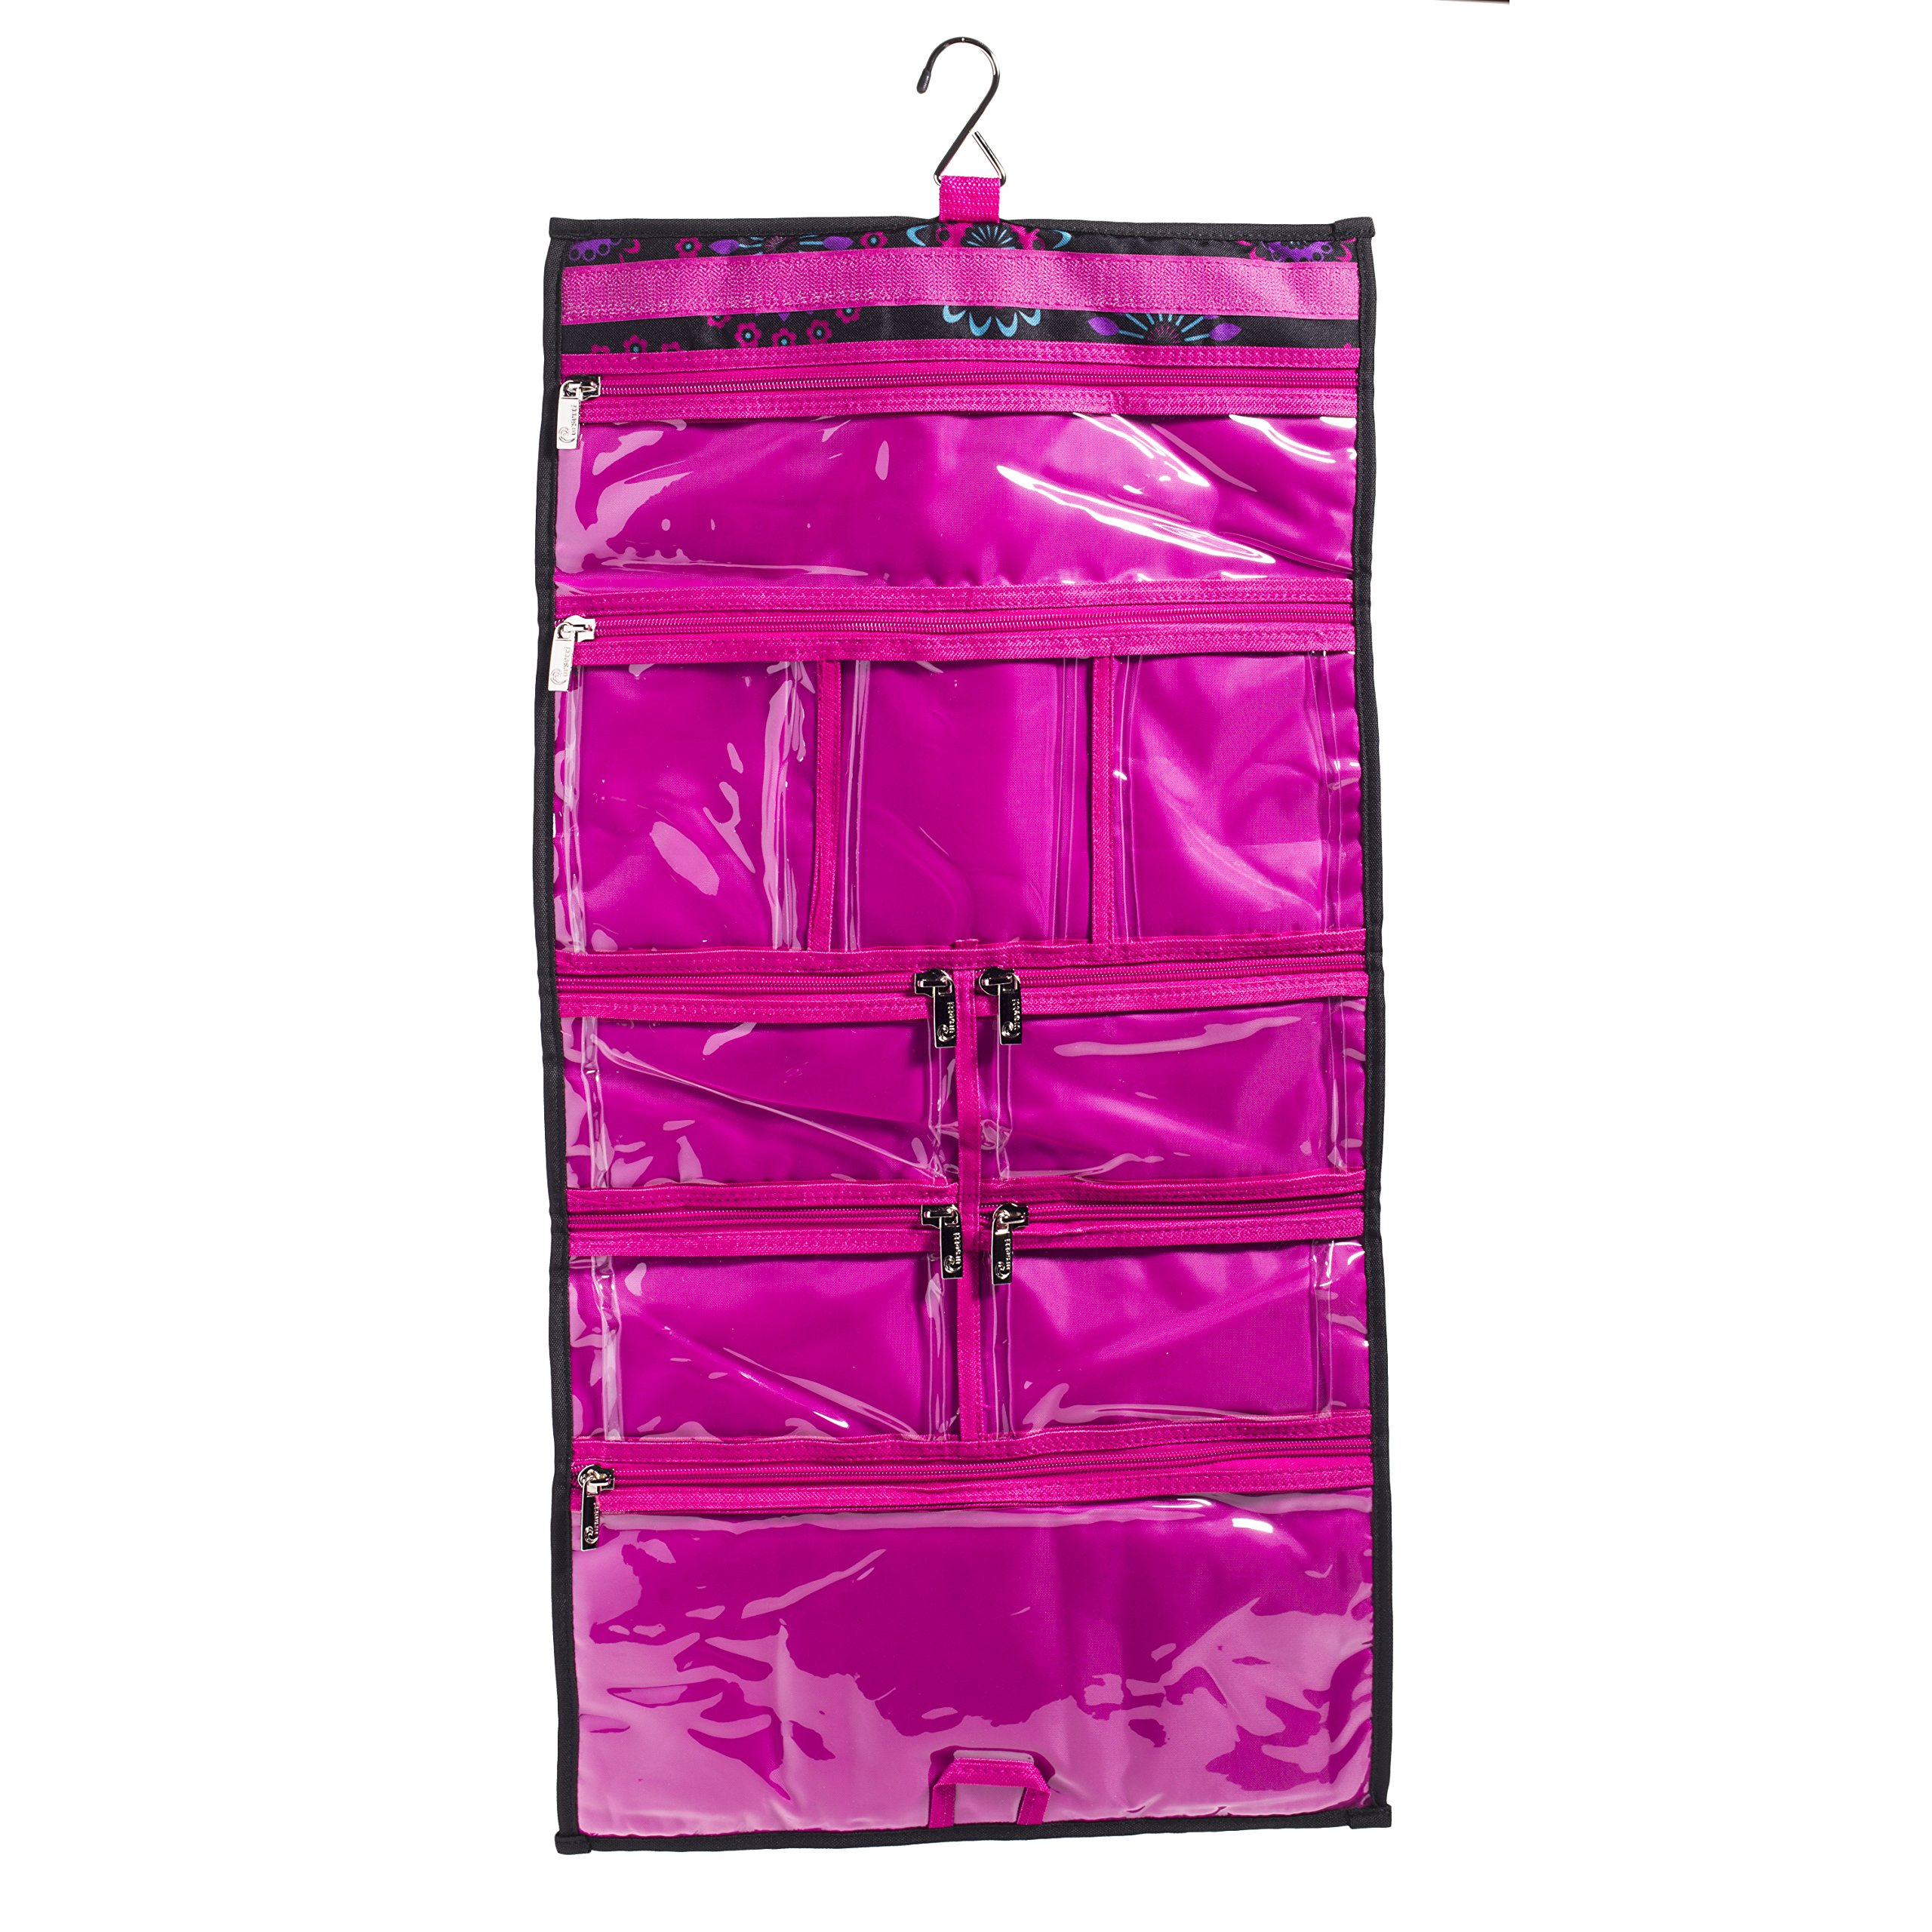 Hanging Travel Organizer, 9 Large Clear Zipper Pockets for Makeup, Toiletry, Cosmetics, Underwear, Jewelry, Lingerie Holder Bag for Women - Closet, Wall or Door (Purple Circle)